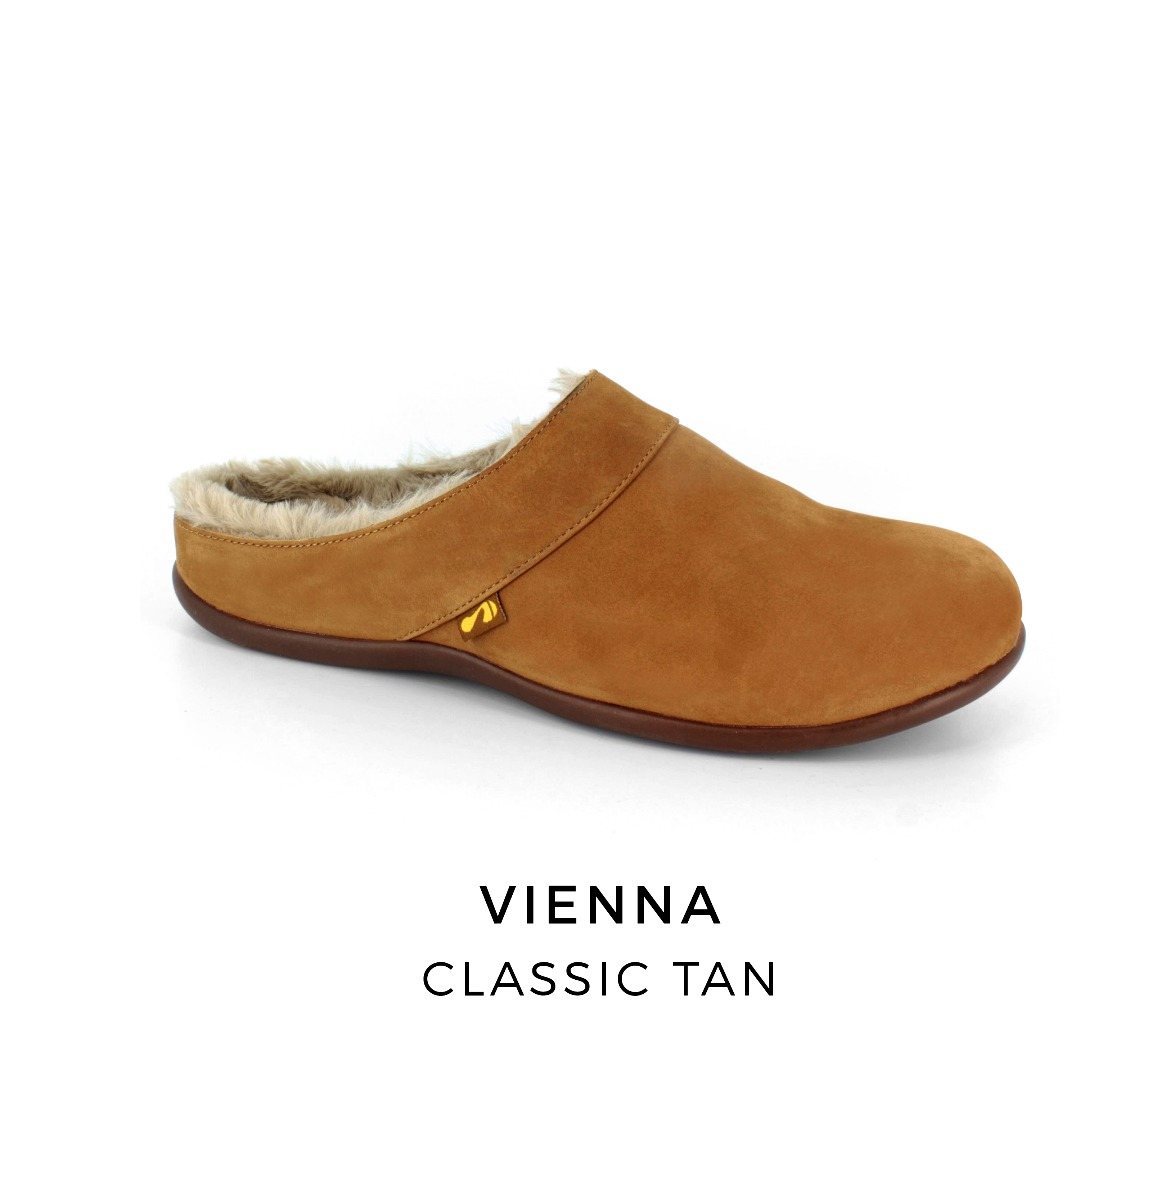 Vienna orthotic slippers with arch support